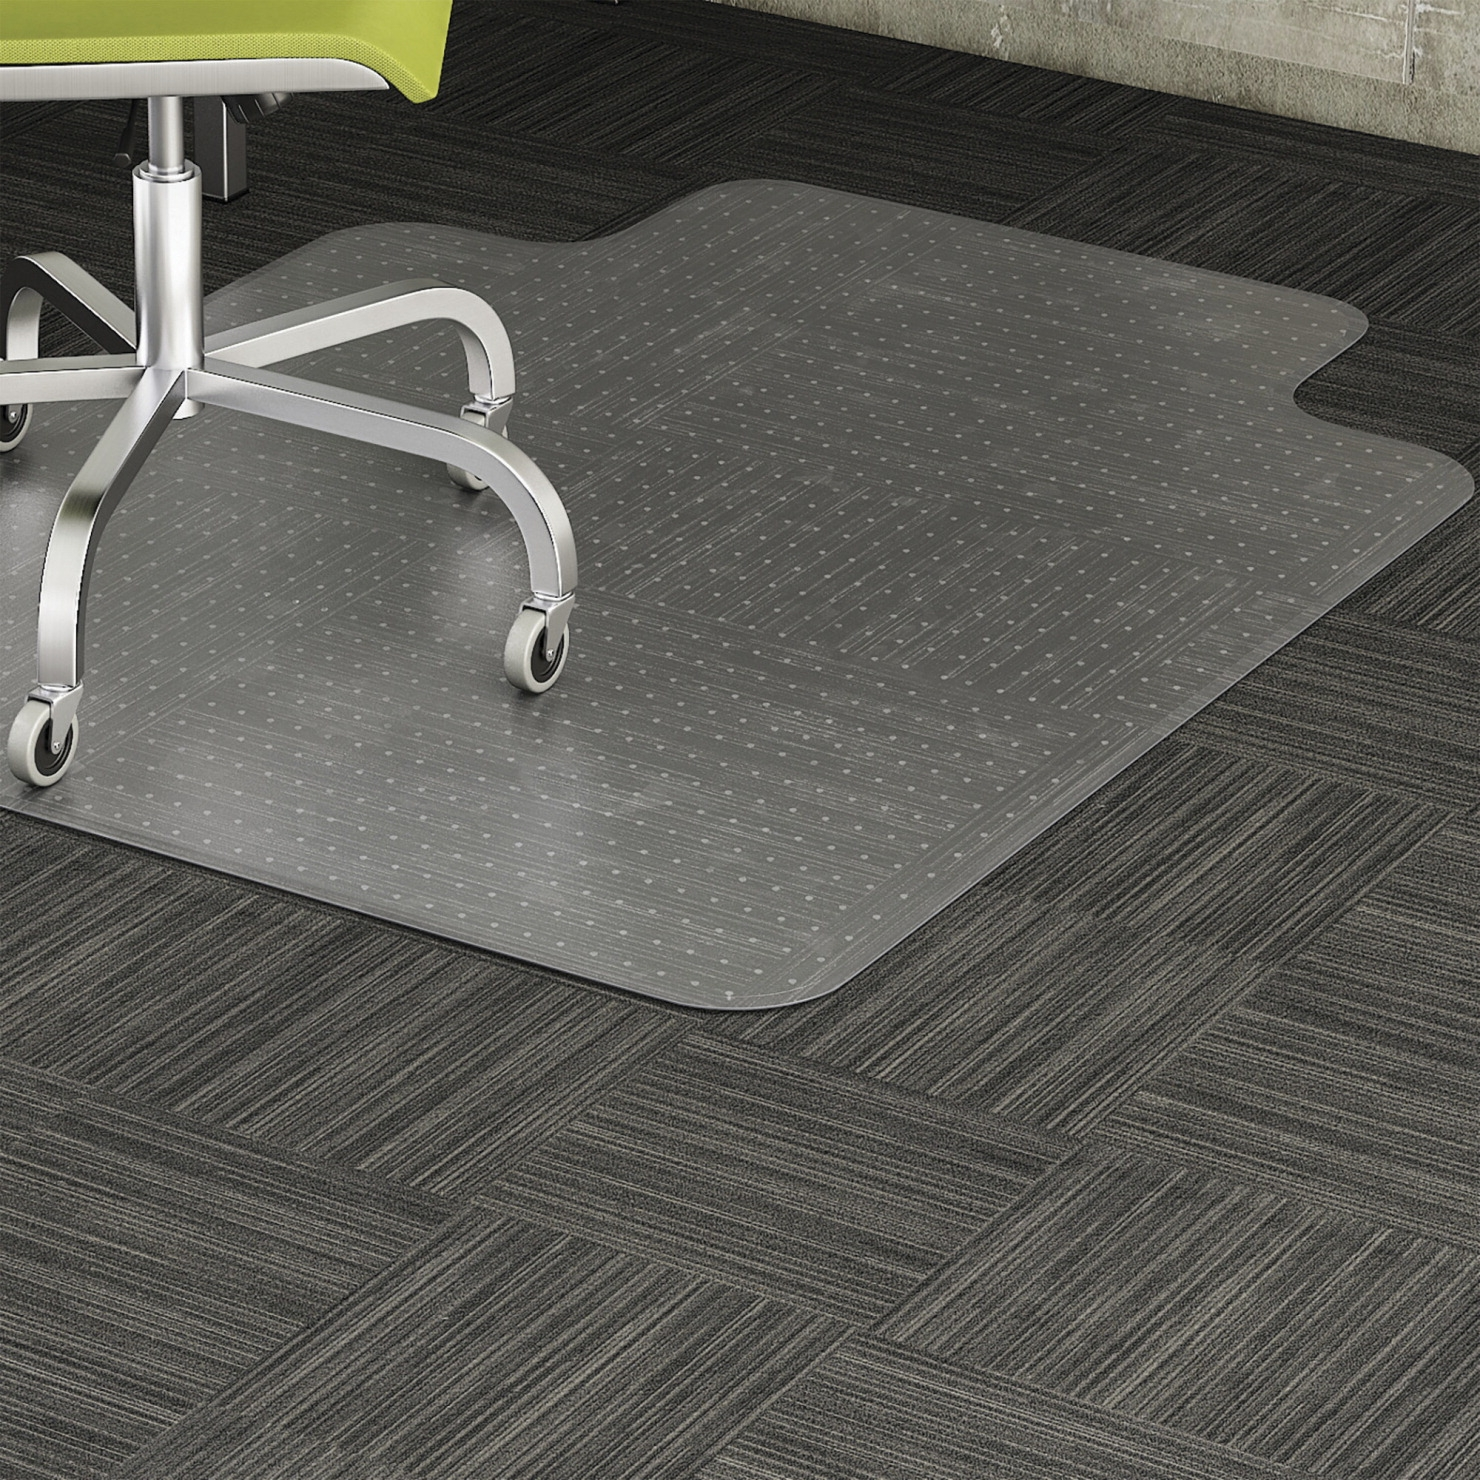 Lorell Low-pile Carpet Chairmat; Standard Lip 19 X 10 In; 36 X 48 In; Clear - 1506077 - Facilities Management Bar Stool Set Table Chair Metal State Logo Chairs Wood Metal Chairs 1506077